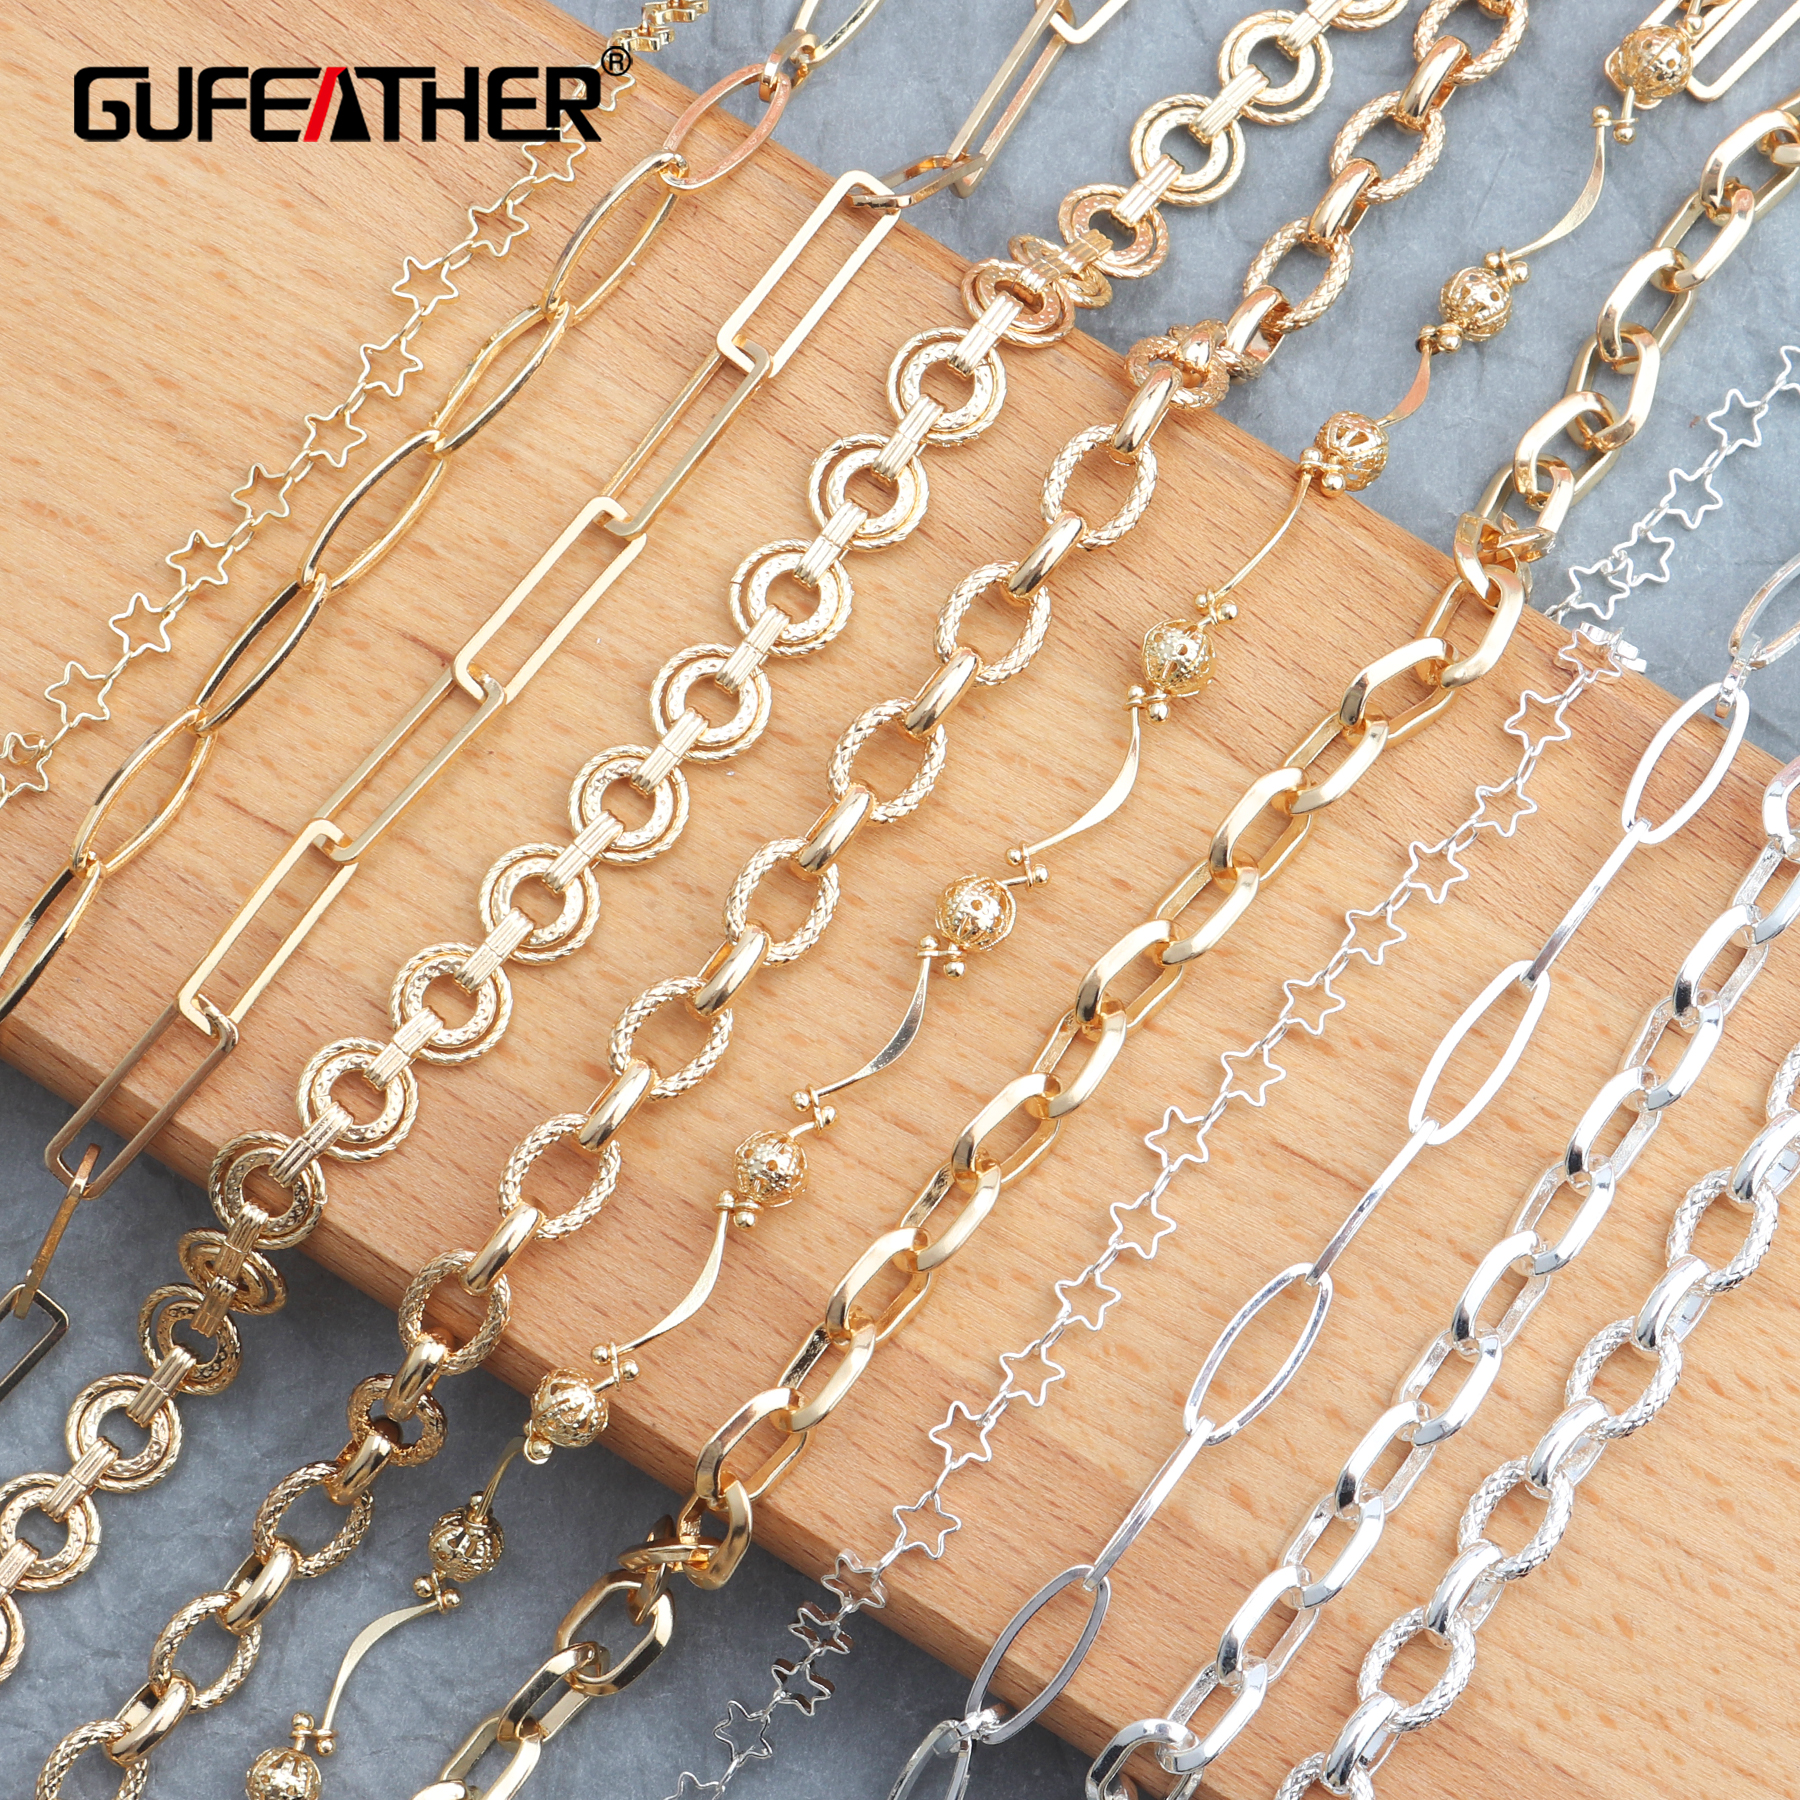 GUFEATHER C38,jewelry Making,silver Gold Chains,necklace For Women,diy Jewelry,copper Metal,jewelry Findings Components,50cm/lot